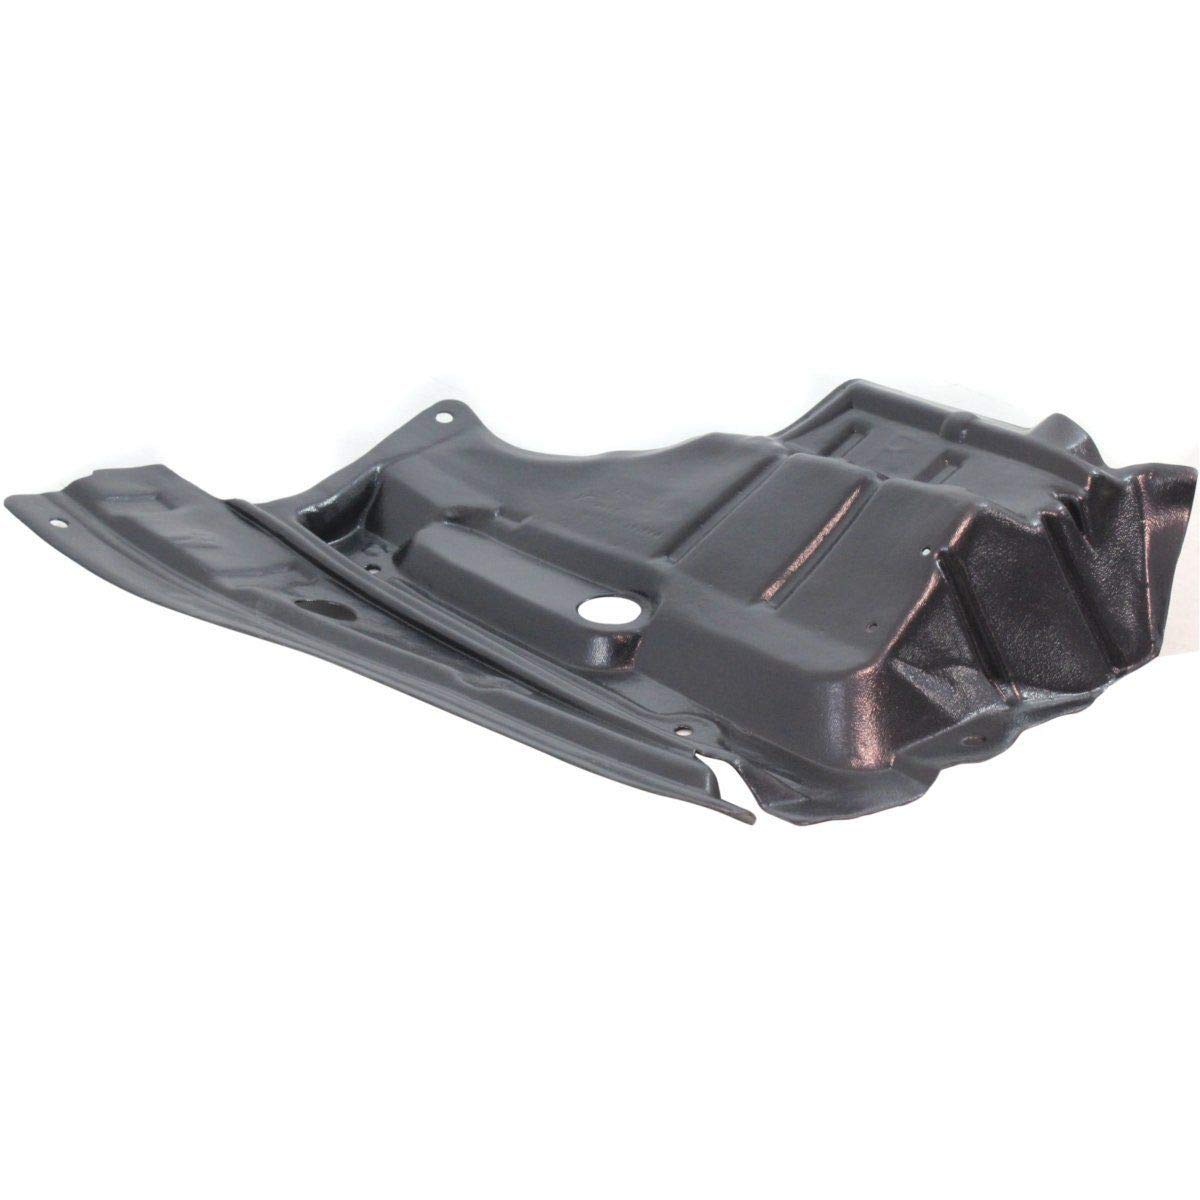 New Right Side Engine Splash Shield For 2002-2003 Nissan Maxima Under Cover NI1249110 758982Y100